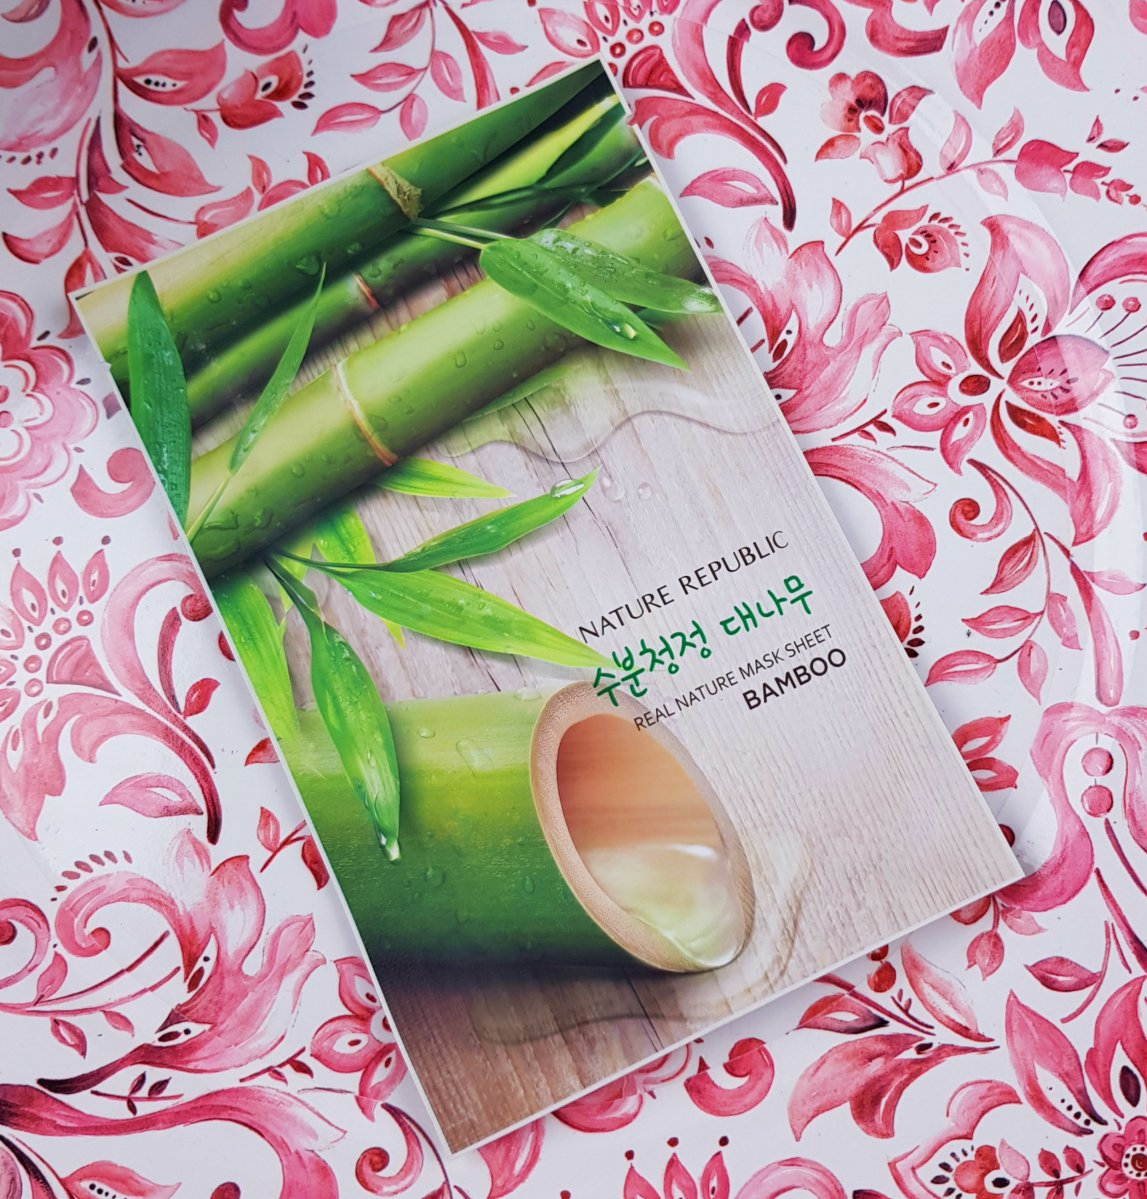 Mask Monday: Nature Republic Real Nature Mask Sheet in Bamboo